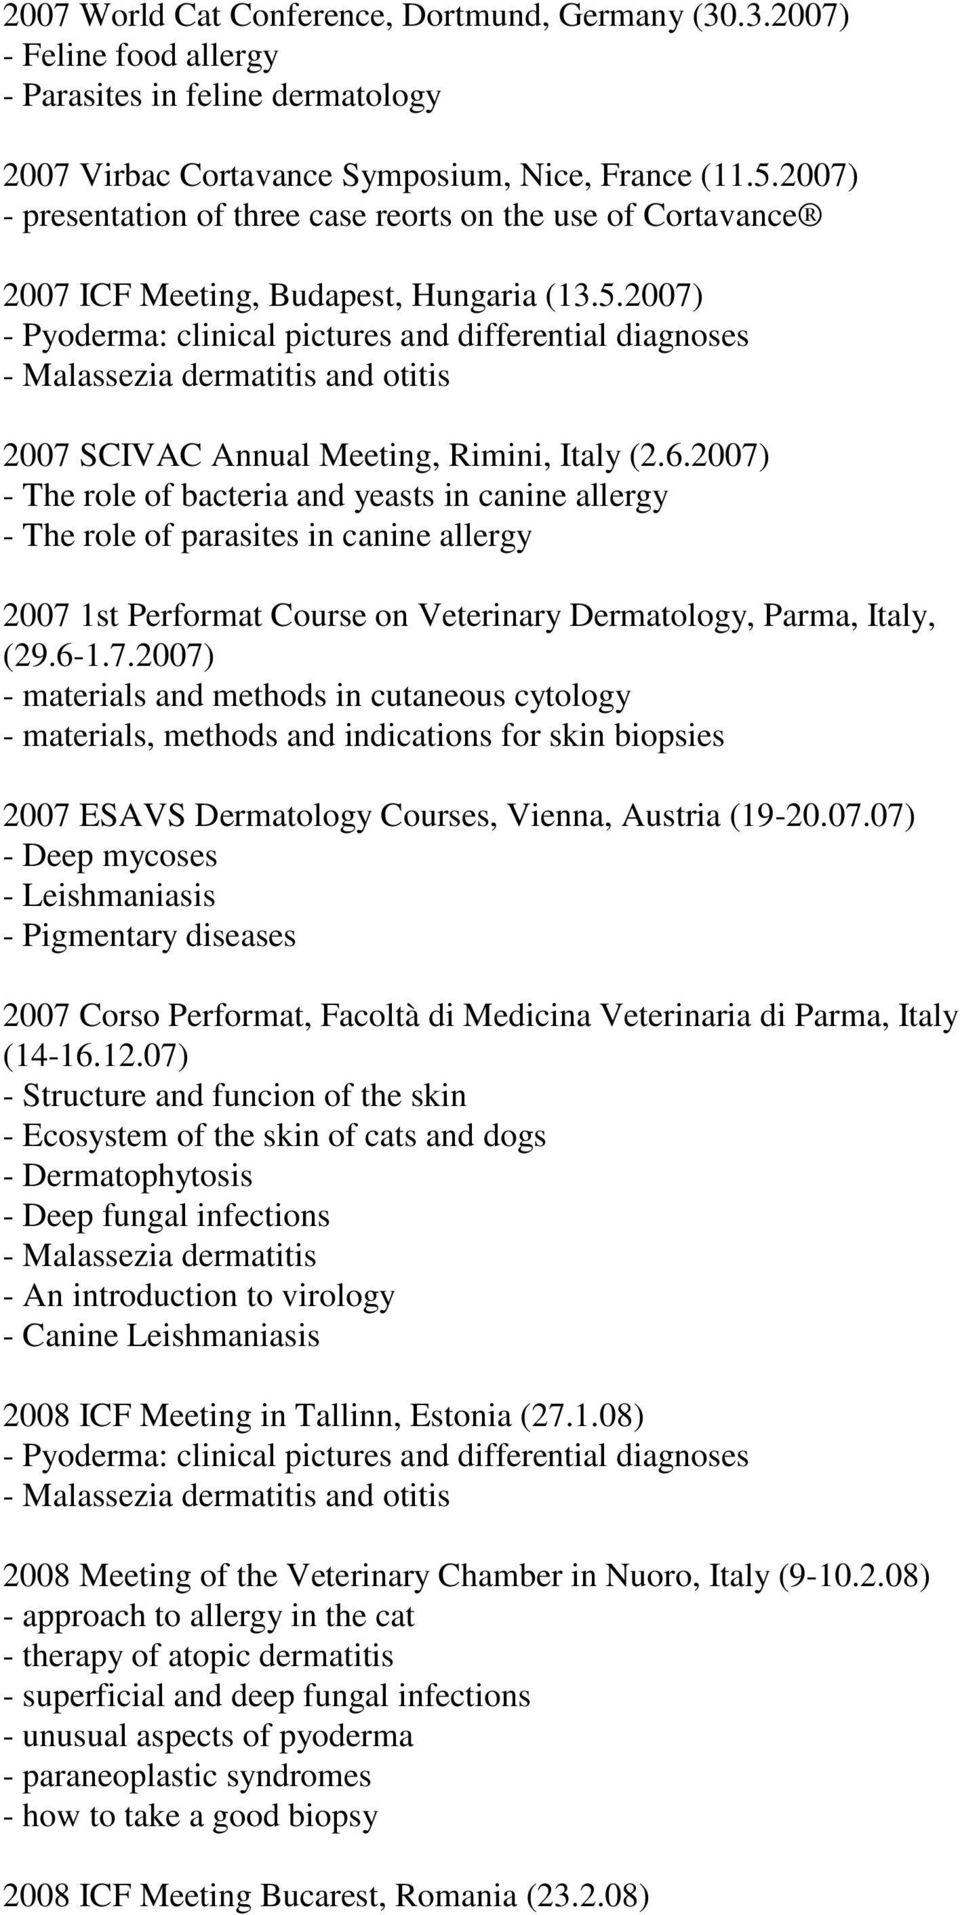 2007) - Pyoderma: clinical pictures and differential diagnoses - Malassezia dermatitis and otitis 2007 SCIVAC Annual Meeting, Rimini, Italy (2.6.